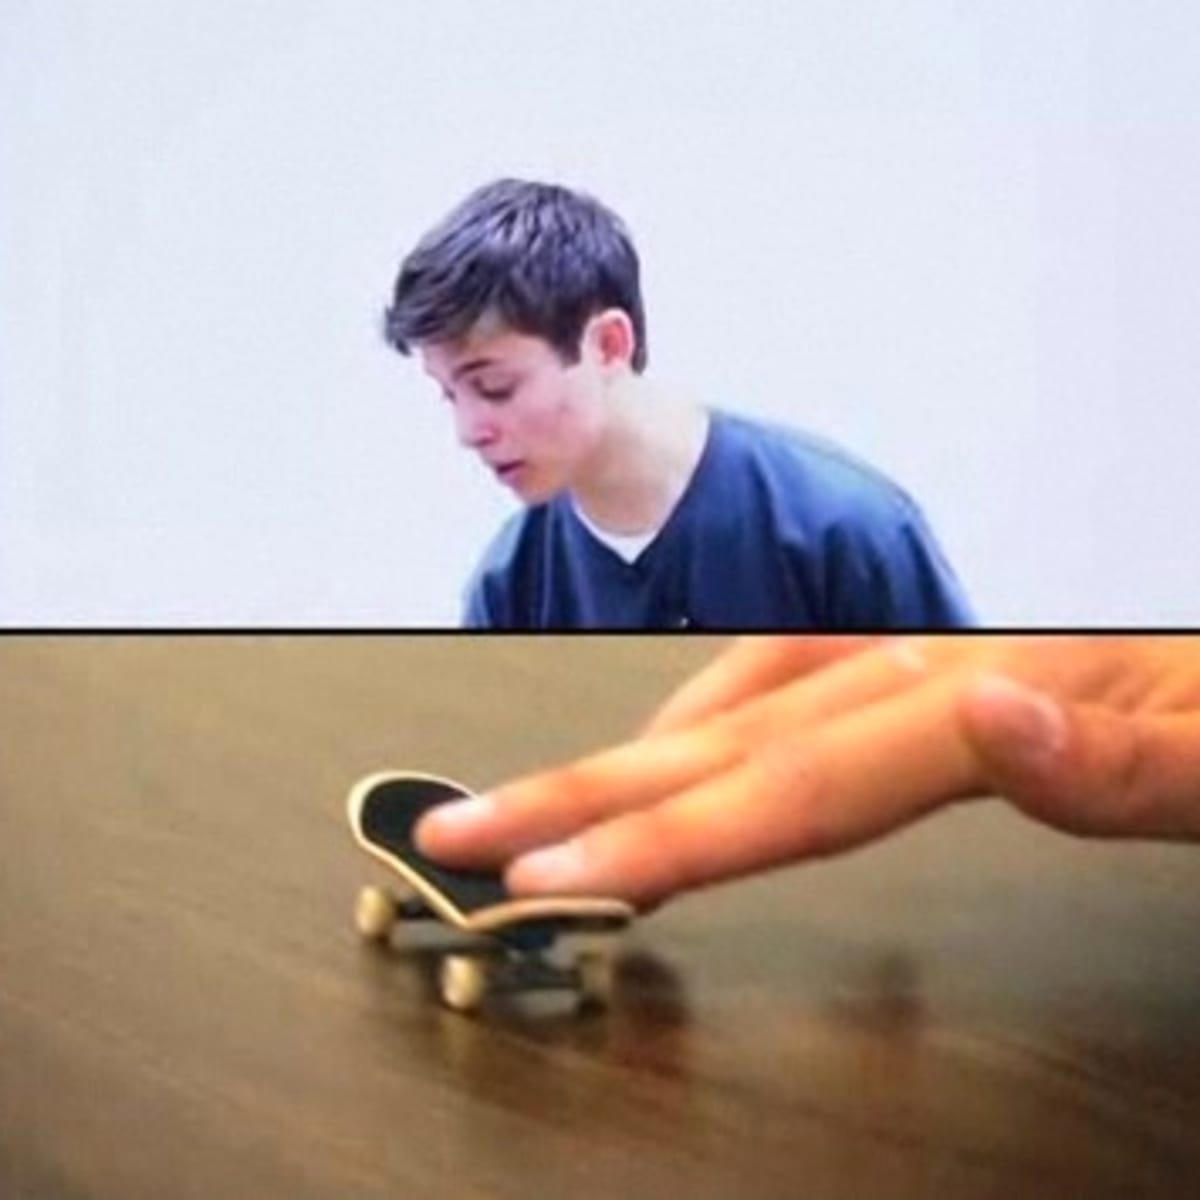 How To Do A Fingerboarding Kickflip With A Tech Deck Howcast